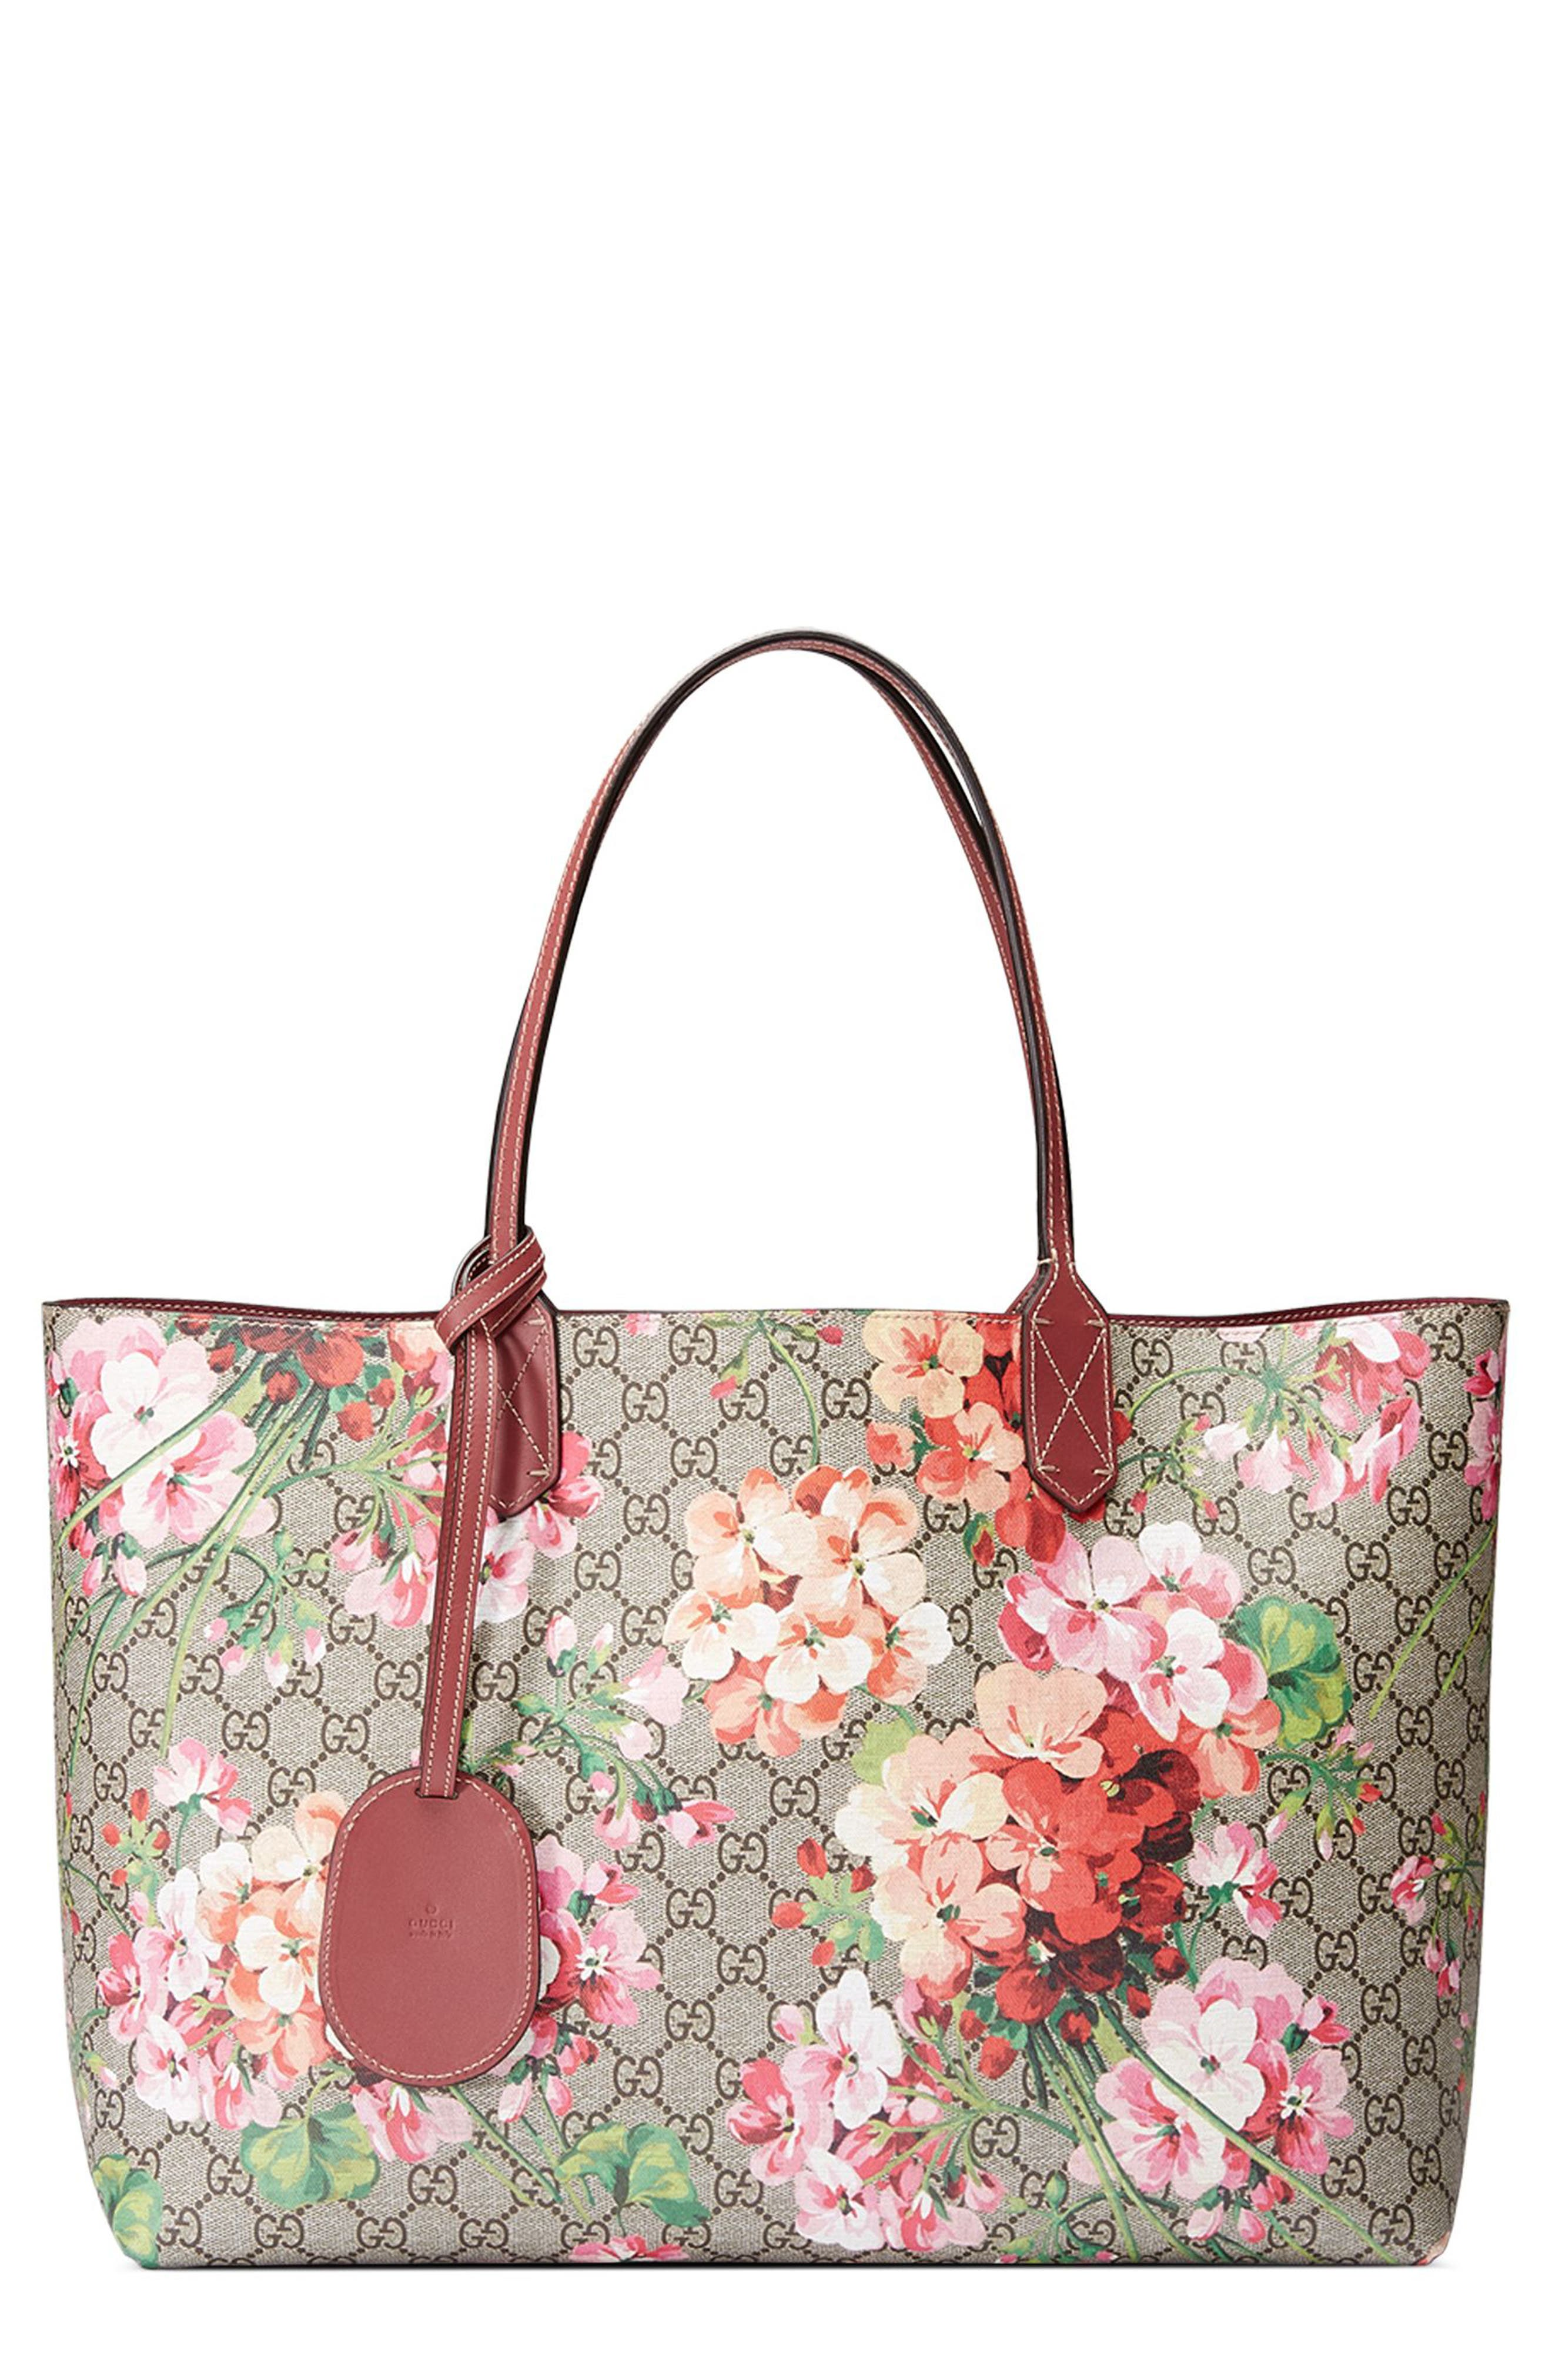 GUCCI, Medium GG Blooms Reversible Canvas & Leather Tote, Main thumbnail 1, color, 291